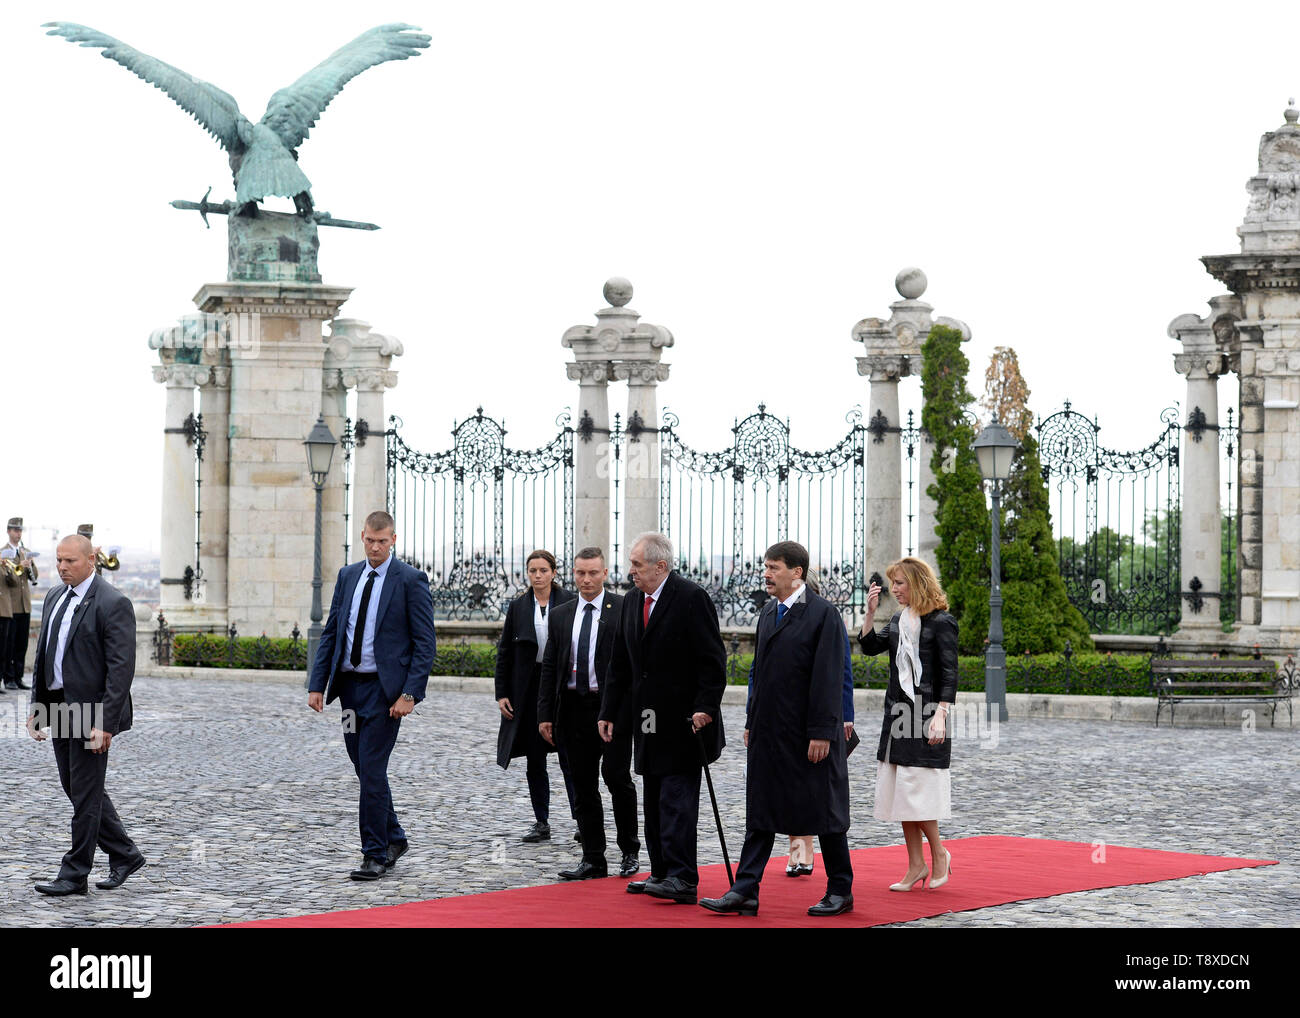 Budapest, Hungary. 15th May, 2019. Czech President Milos Zeman (3rd from right) and his wife Ivana Zemanova (not seen) meet with Hungarian President Janos Ader (2nd from right) and his wife Anita Herczegh (right) on May 15, 2019, in Budapest, Hungary. Credit: Katerina Sulova/CTK Photo/Alamy Live News Stock Photo